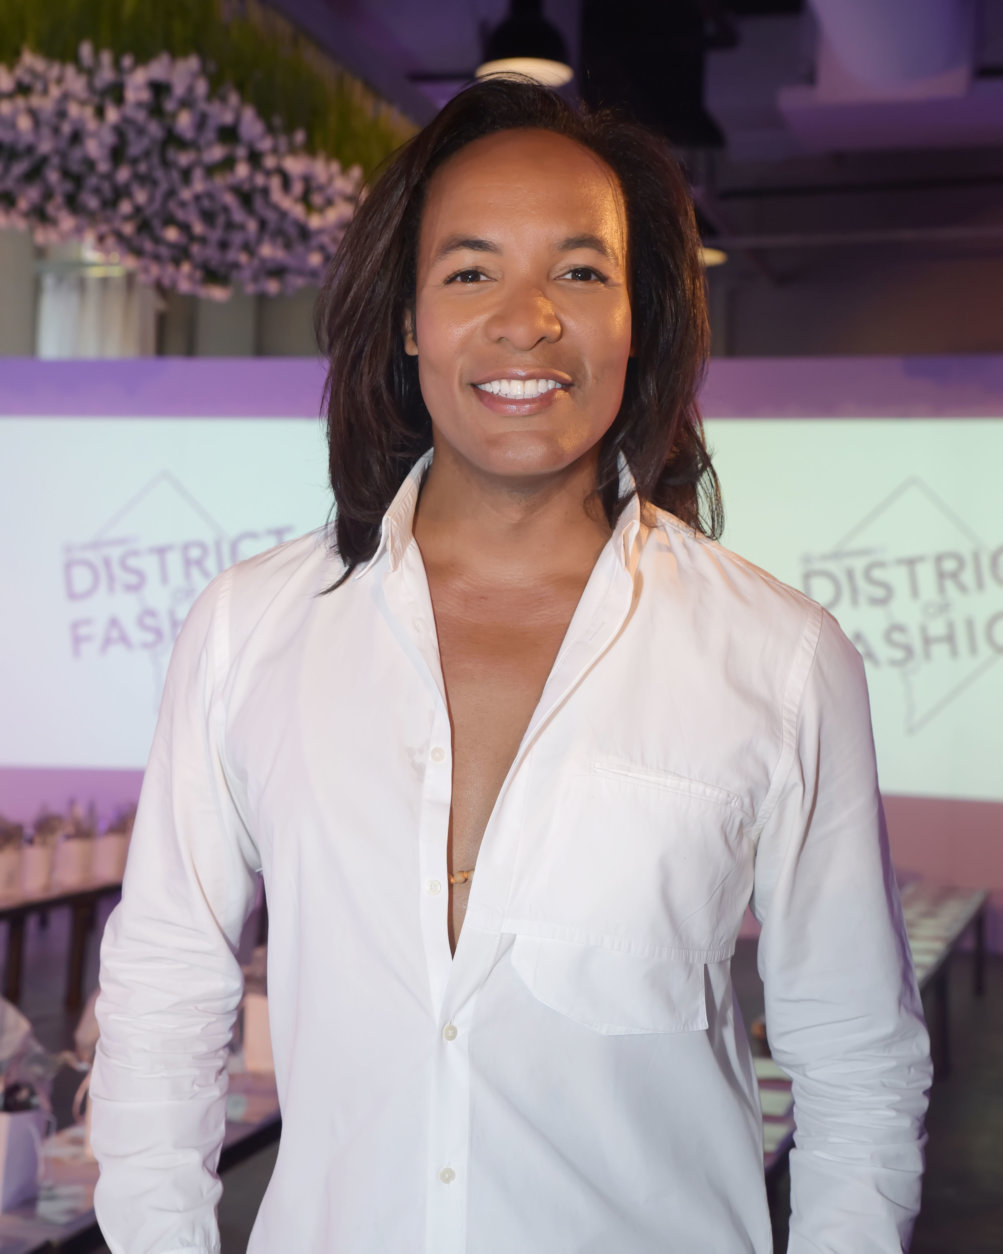 "Television personality, stylist, and author Paul Wharton hosts the District of Fashion runway show. (Courtesy Shannon Finney/<a href=""https://www.shannonfinneyphotography.com/index"" target=""_blank"" rel=""noopener noreferrer"">shannonfinneyphotography.com</a>)"